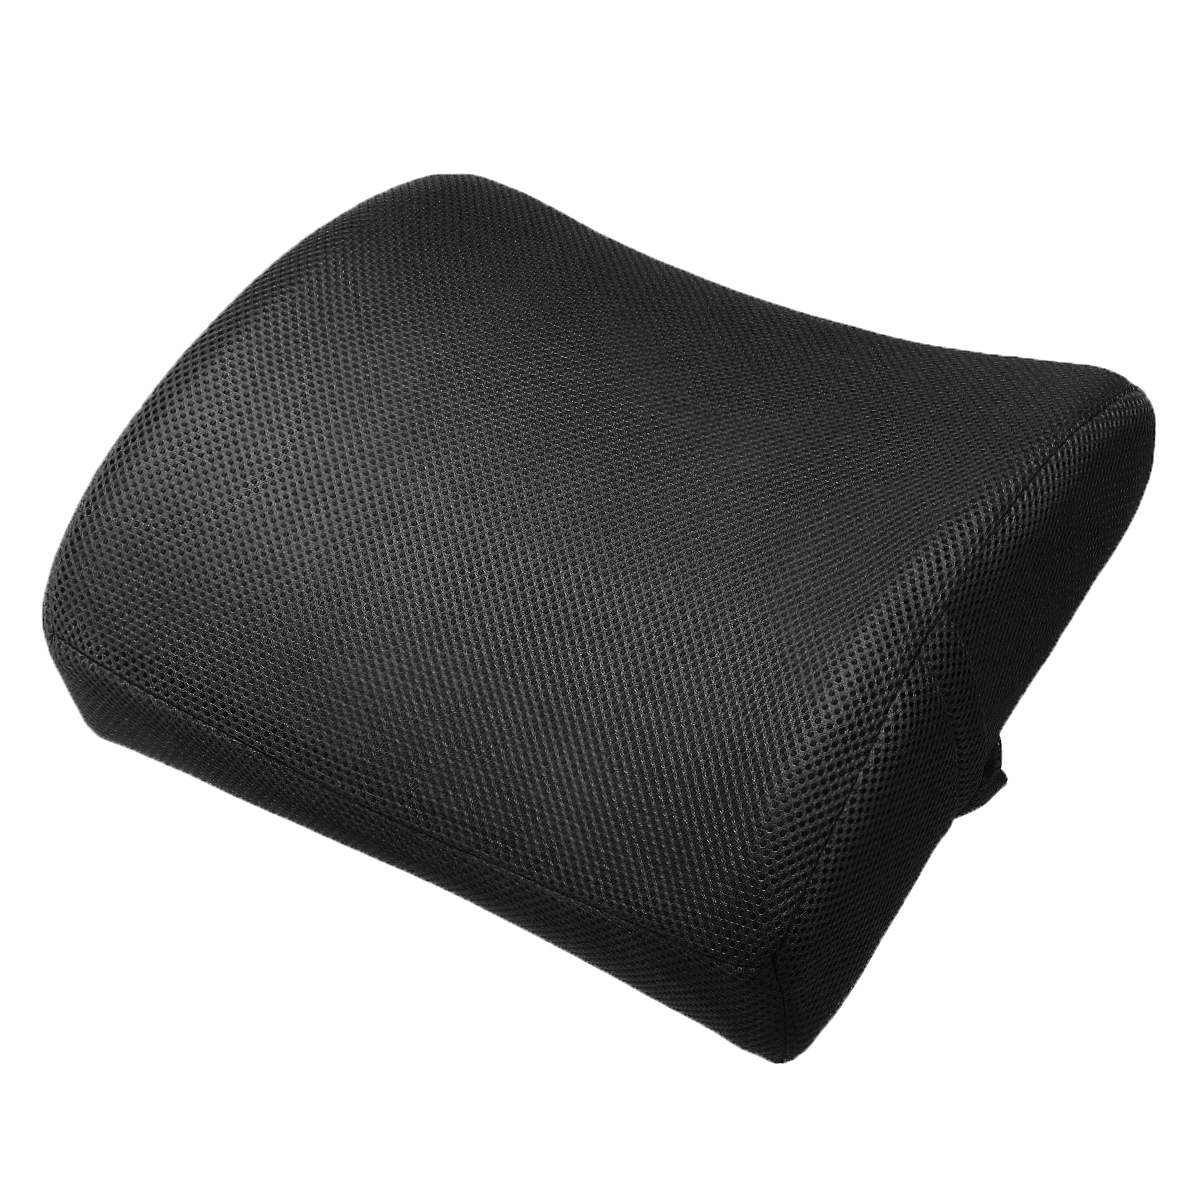 6 Color Lumbar Pillows Made Of Soft Foam For Car Seat To Support And Relieve Back Pain 14